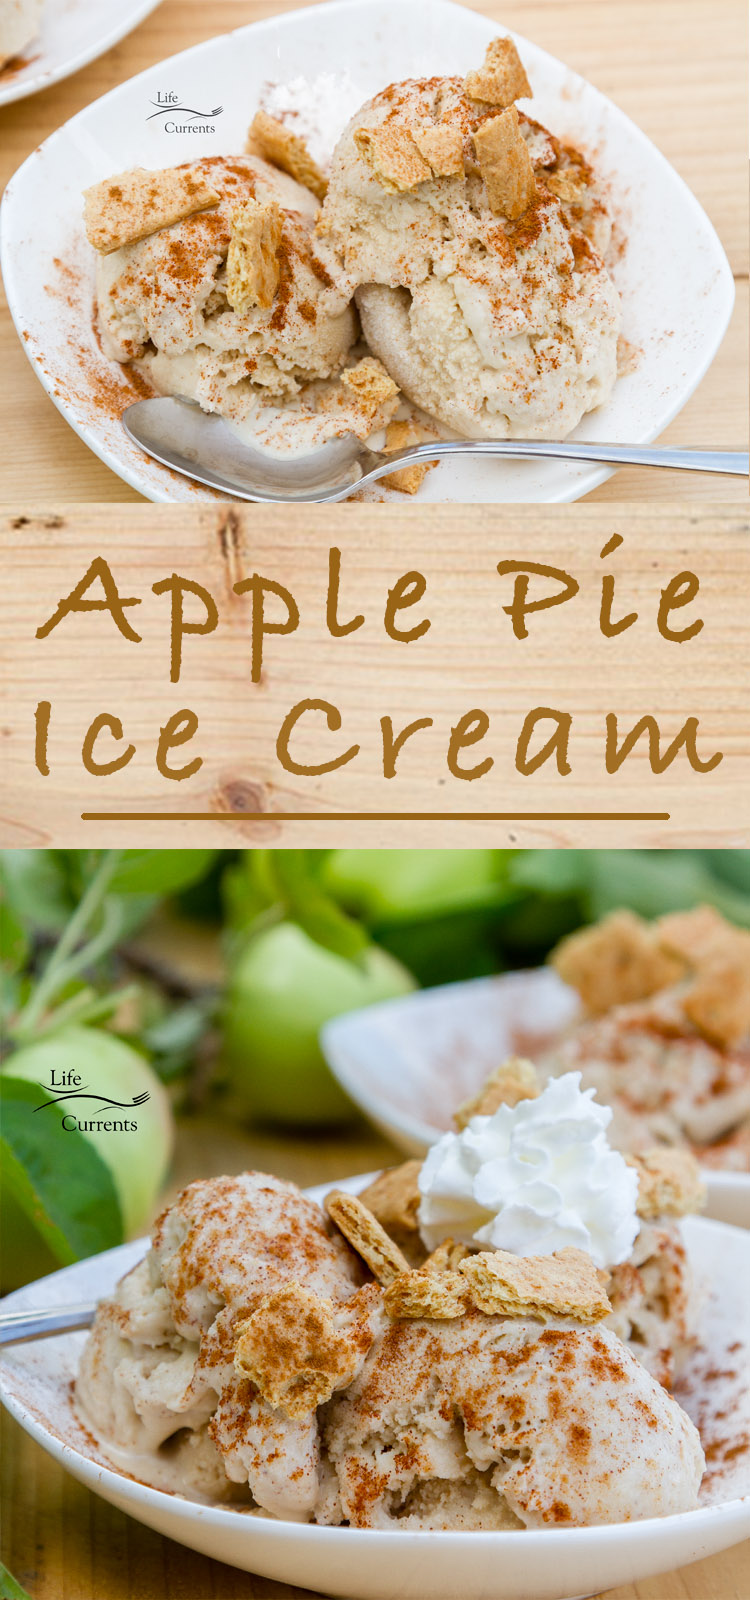 Have your apple pie and your a la mode all in one delicious frozen treat that's as classic and American as Apple Pie